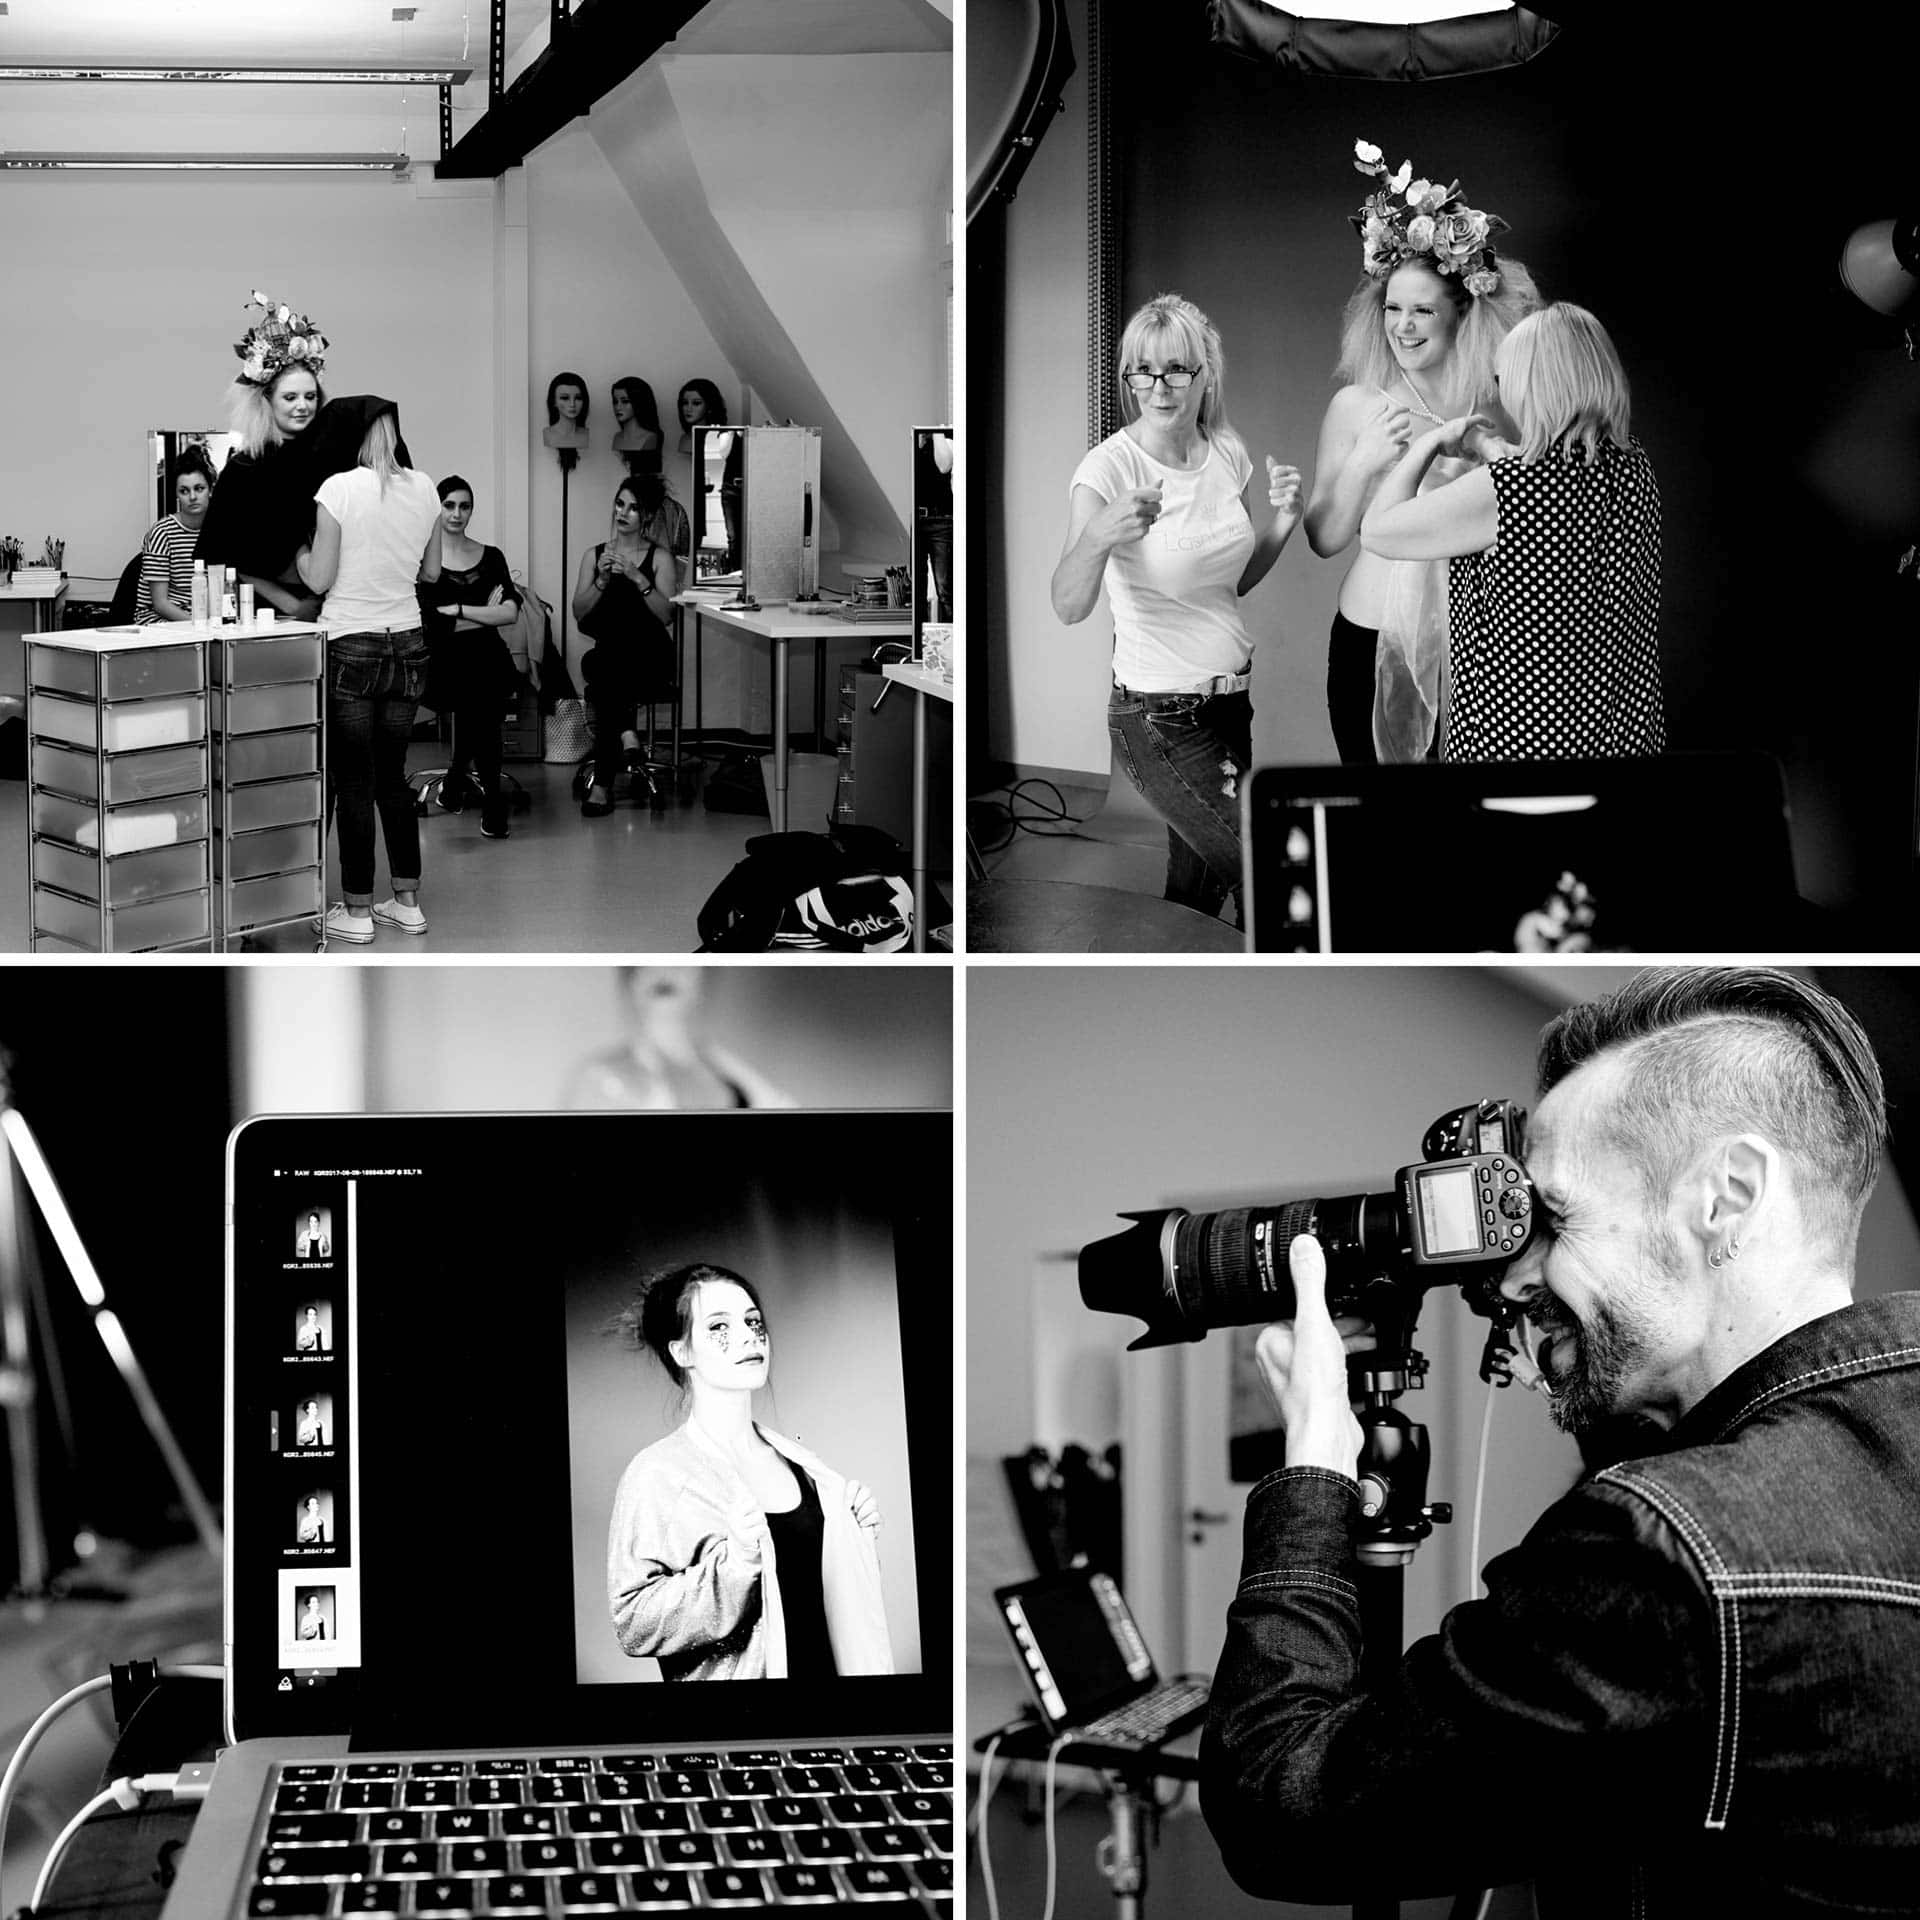 Fotograf Fürth, making-of Fotos des Freestyle Make-up Shootings